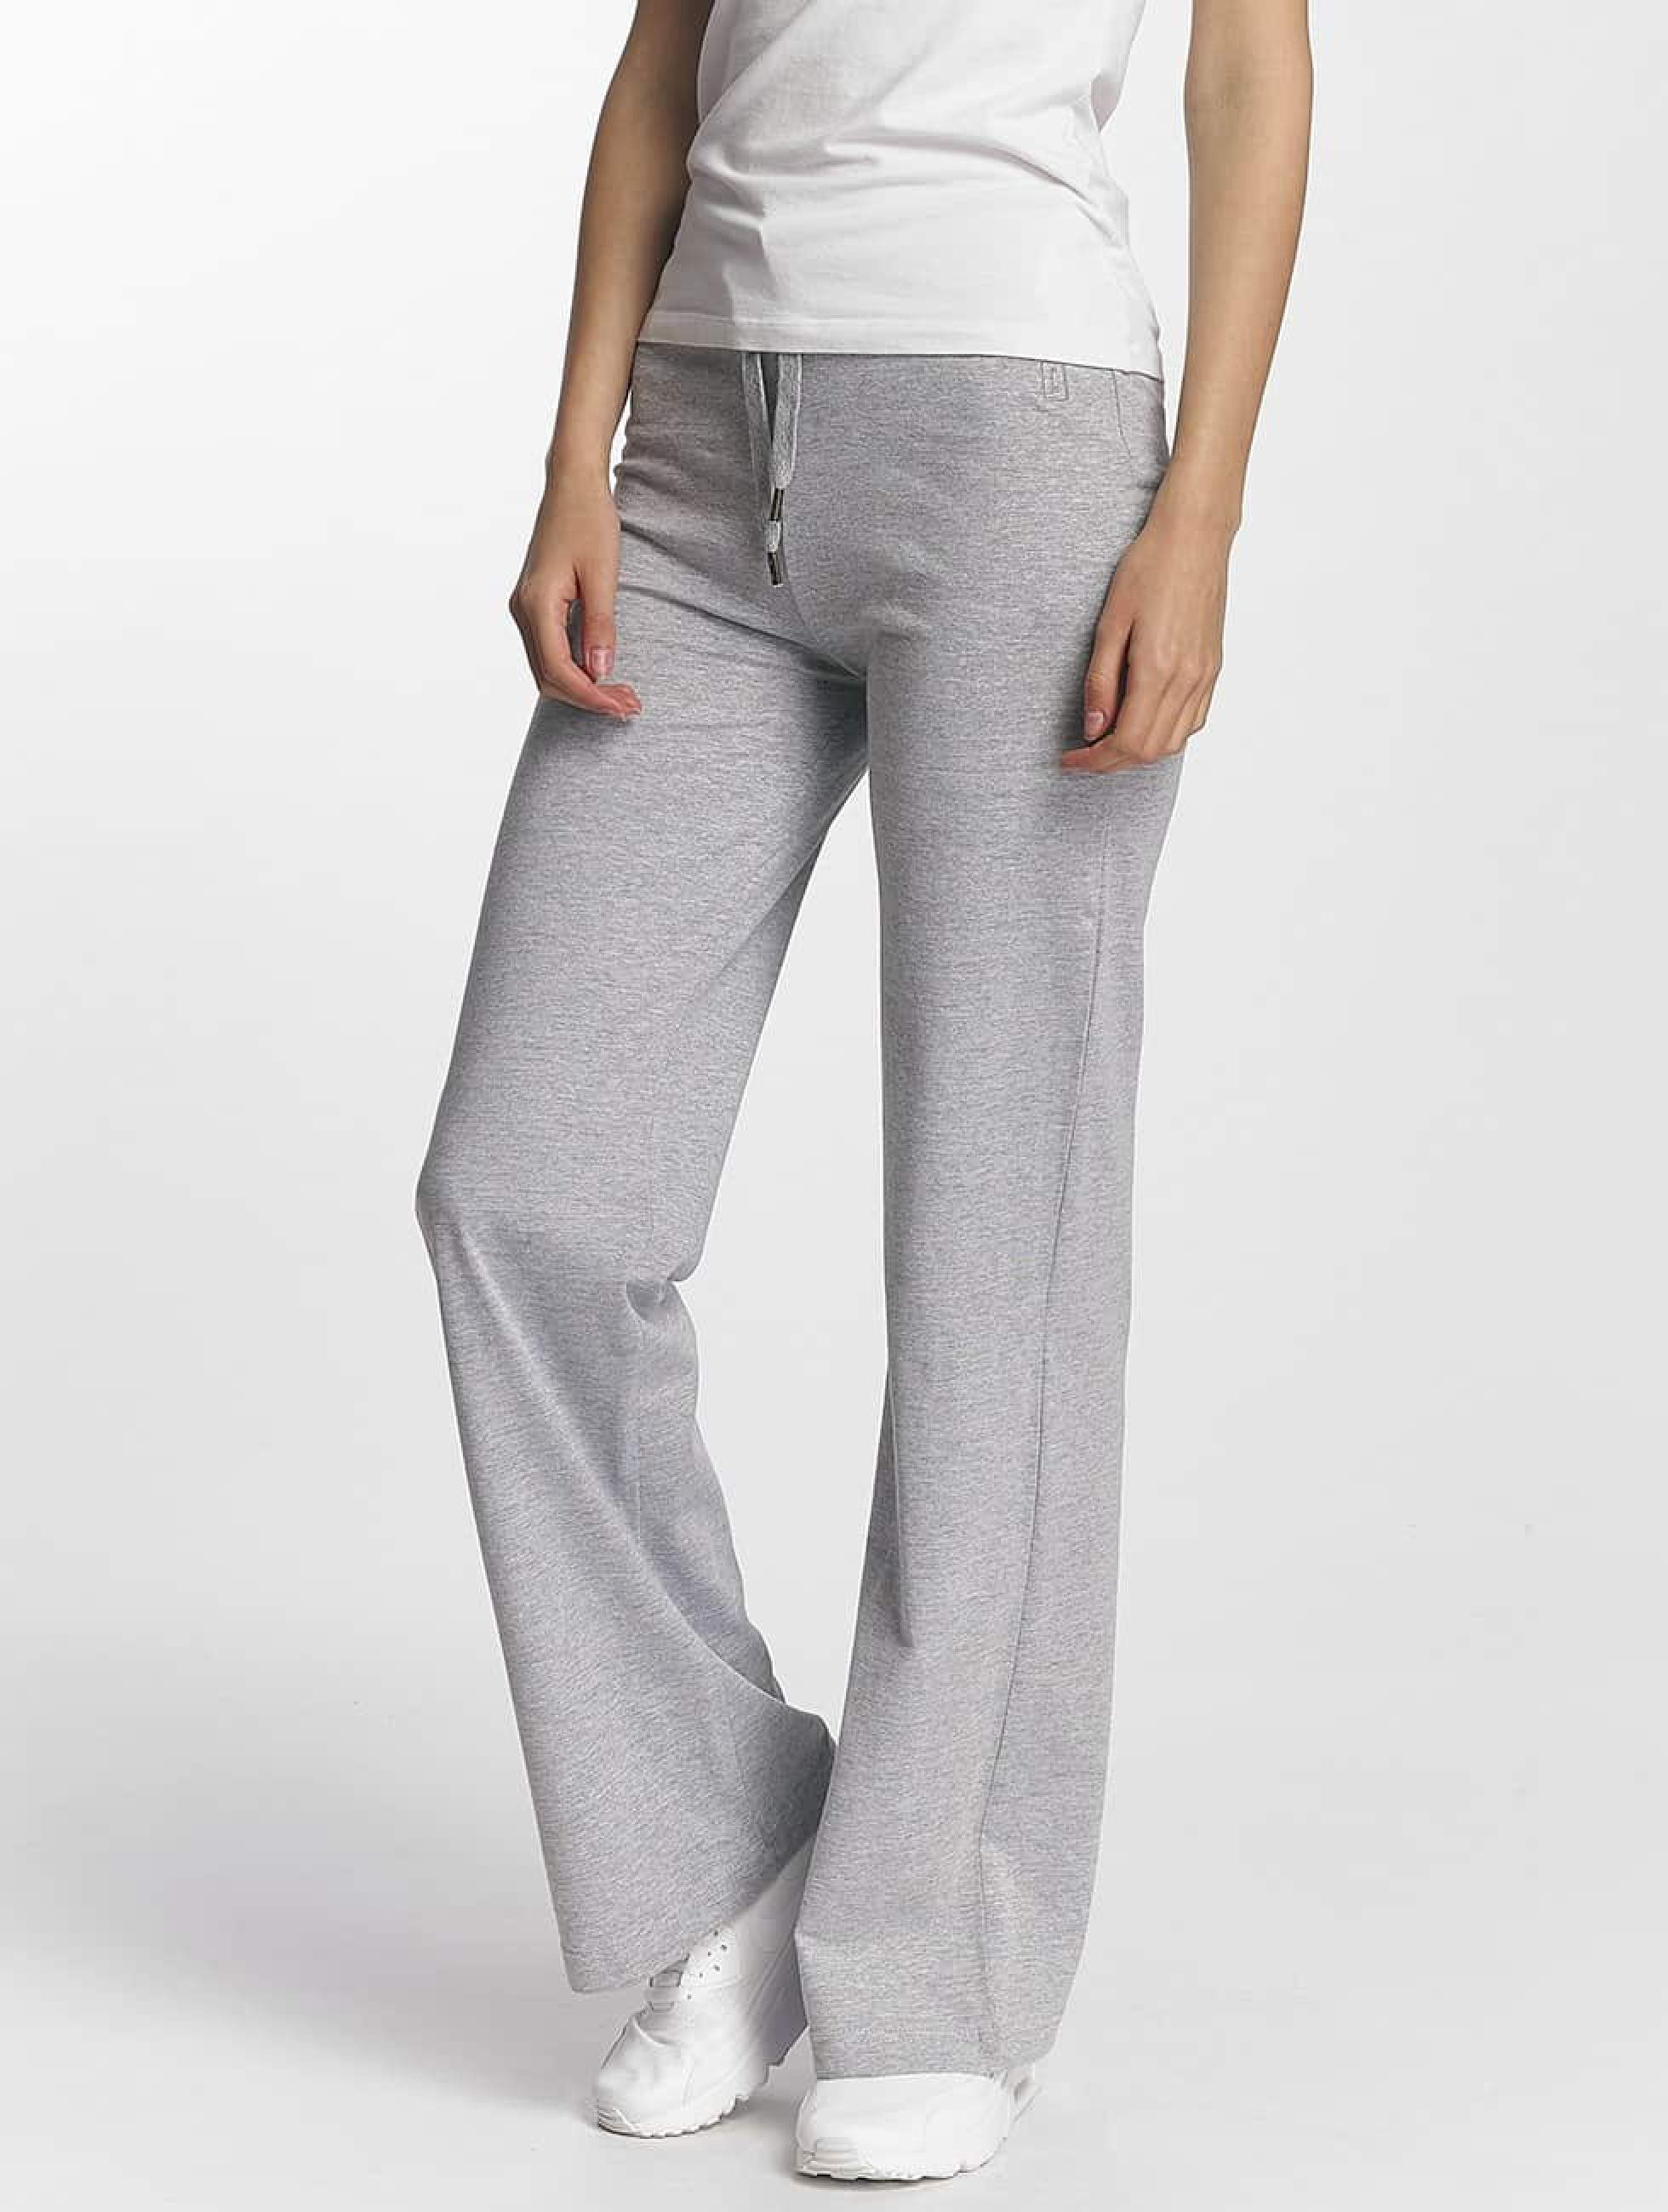 Cyprime / Sweat Pant Silicon in grey XS